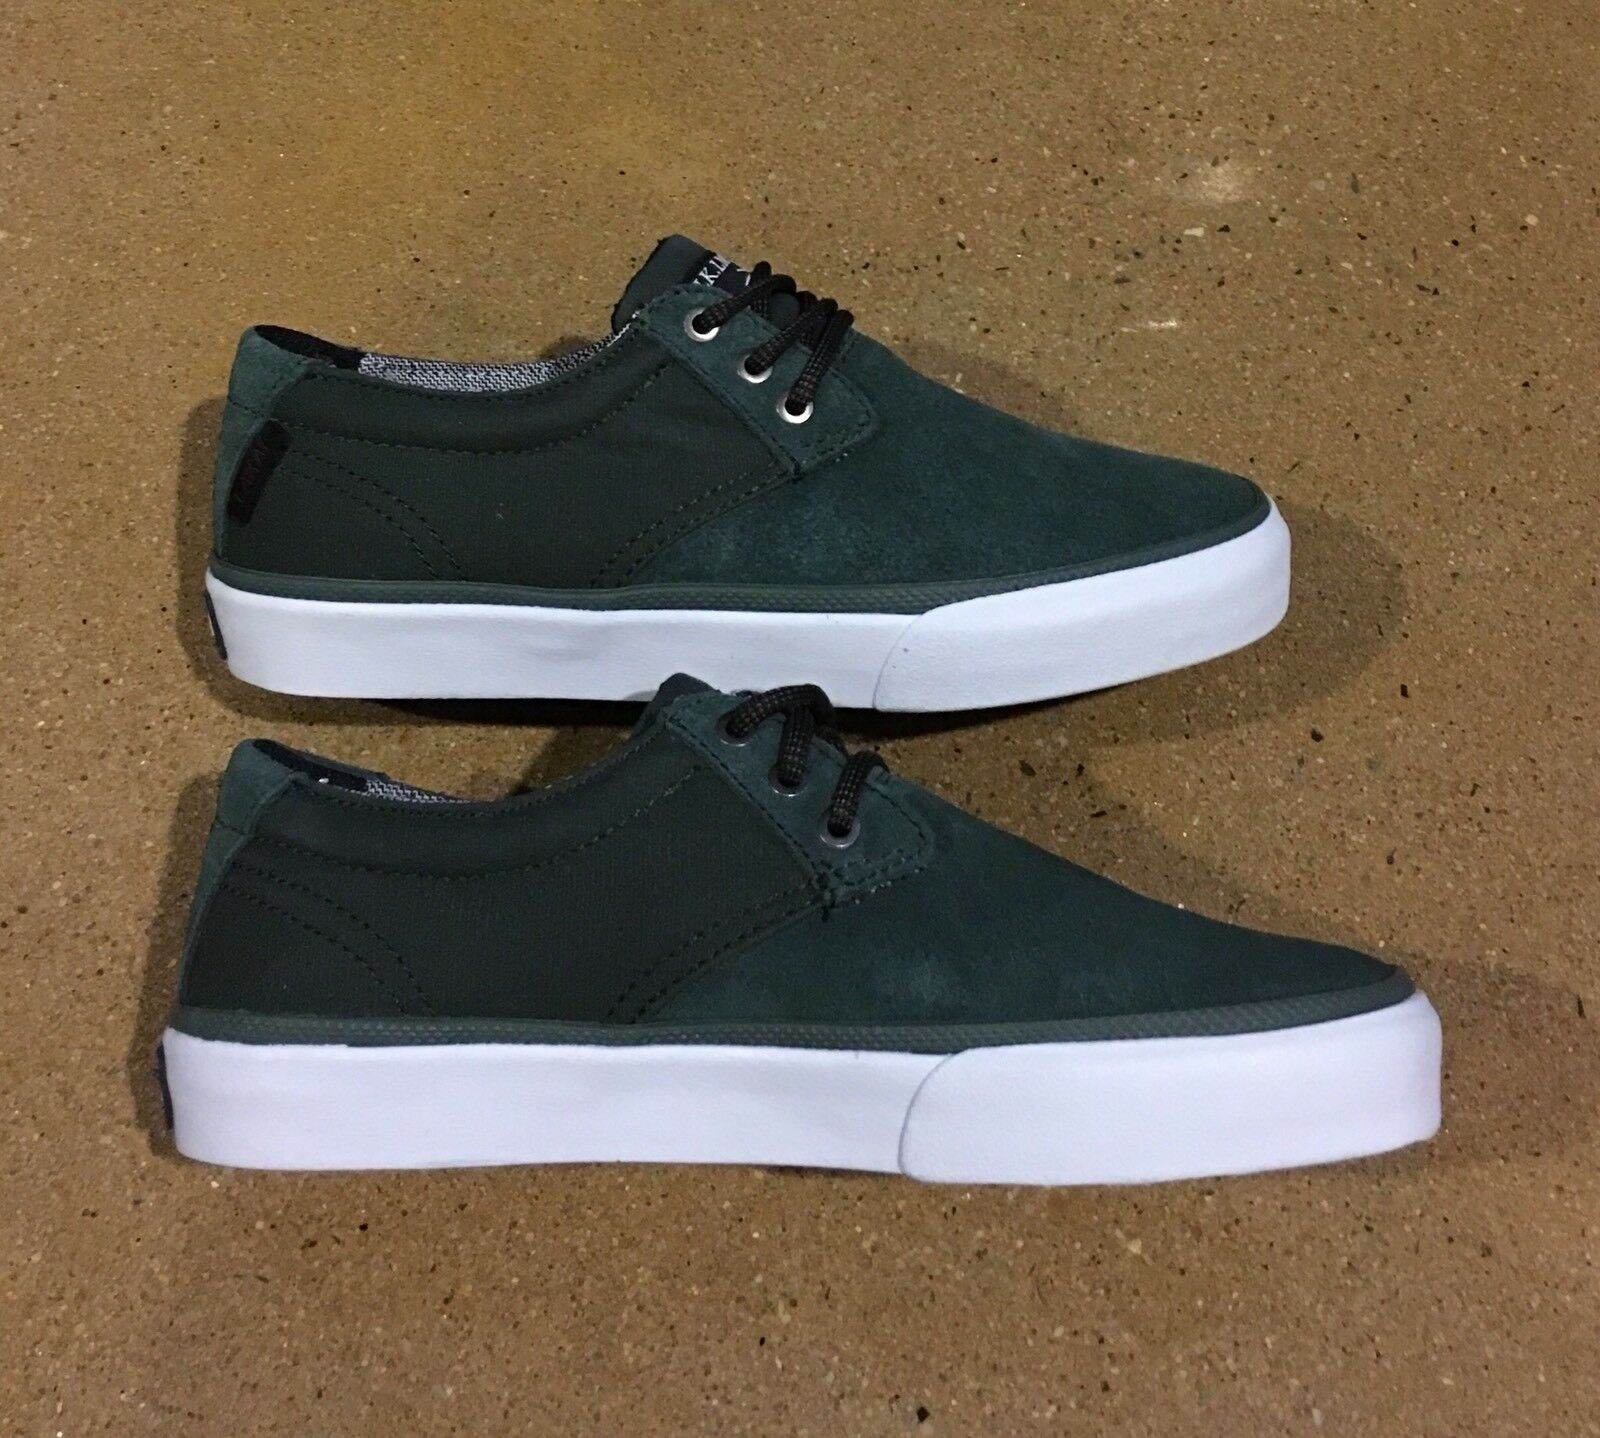 nous lakai daly olive daim taille 5 chaussures chaussures skate dc skate chaussures bmx f22c06